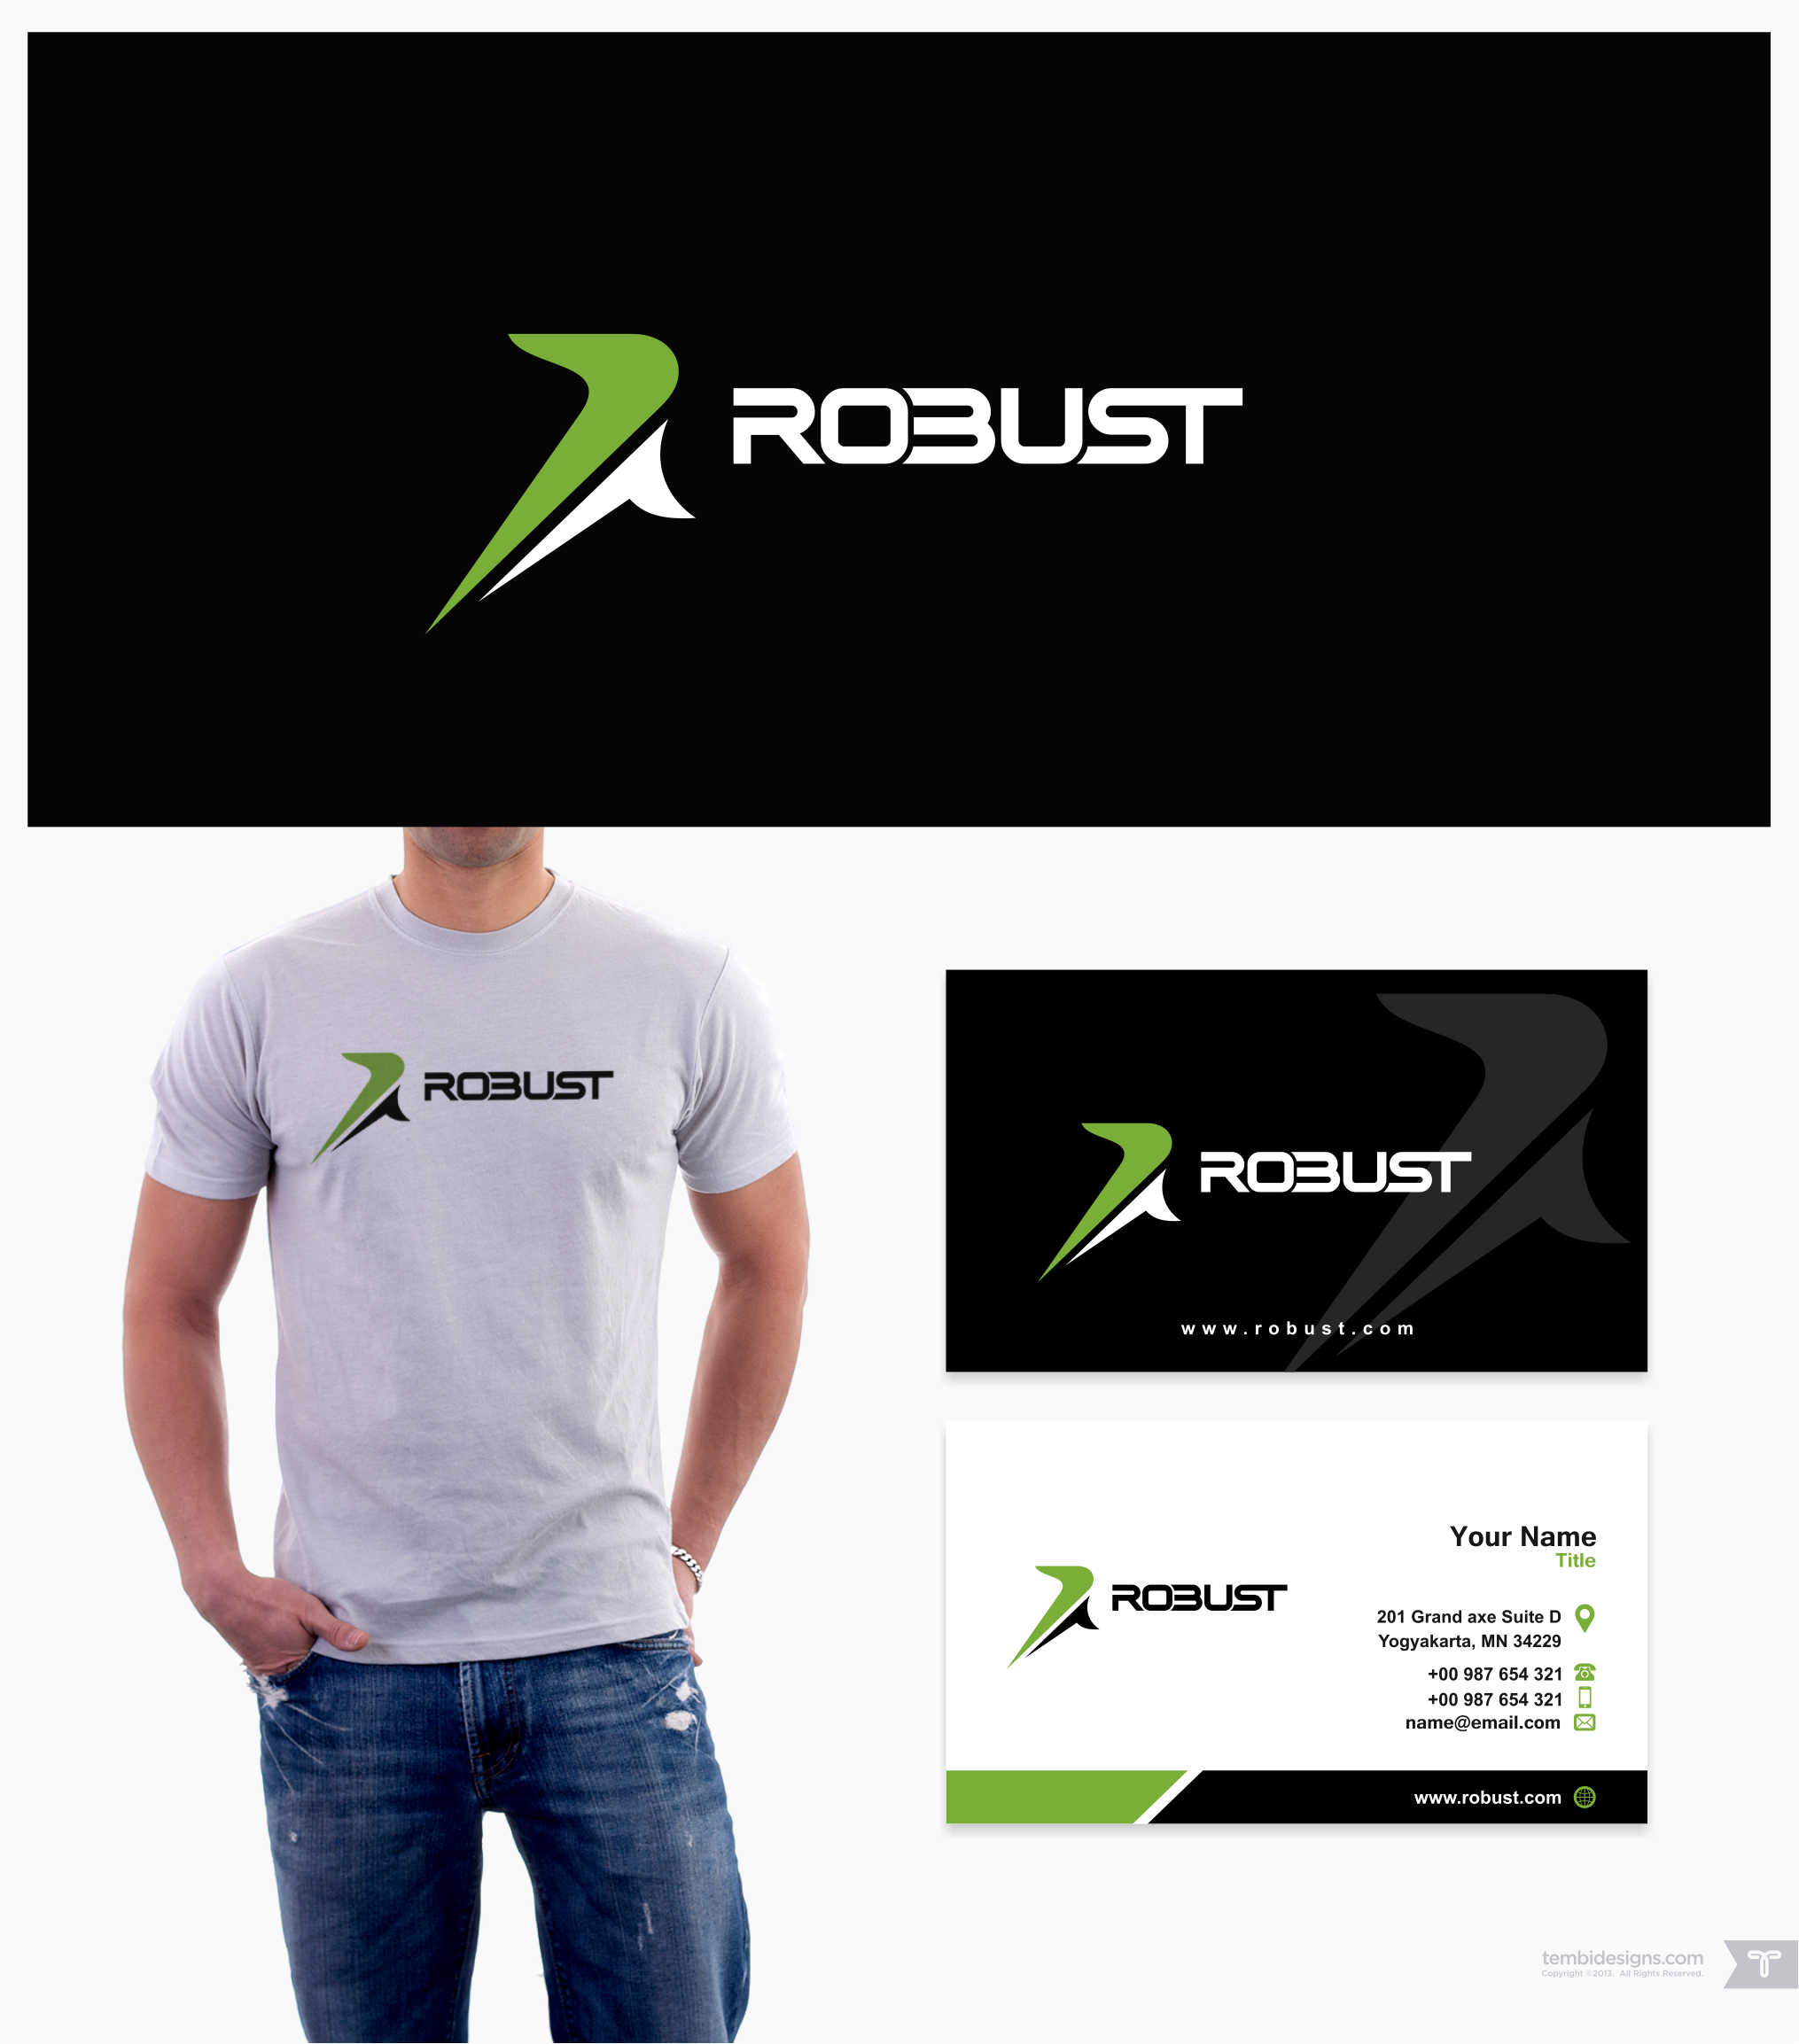 A ROBUST logo and business card is needed for Robust